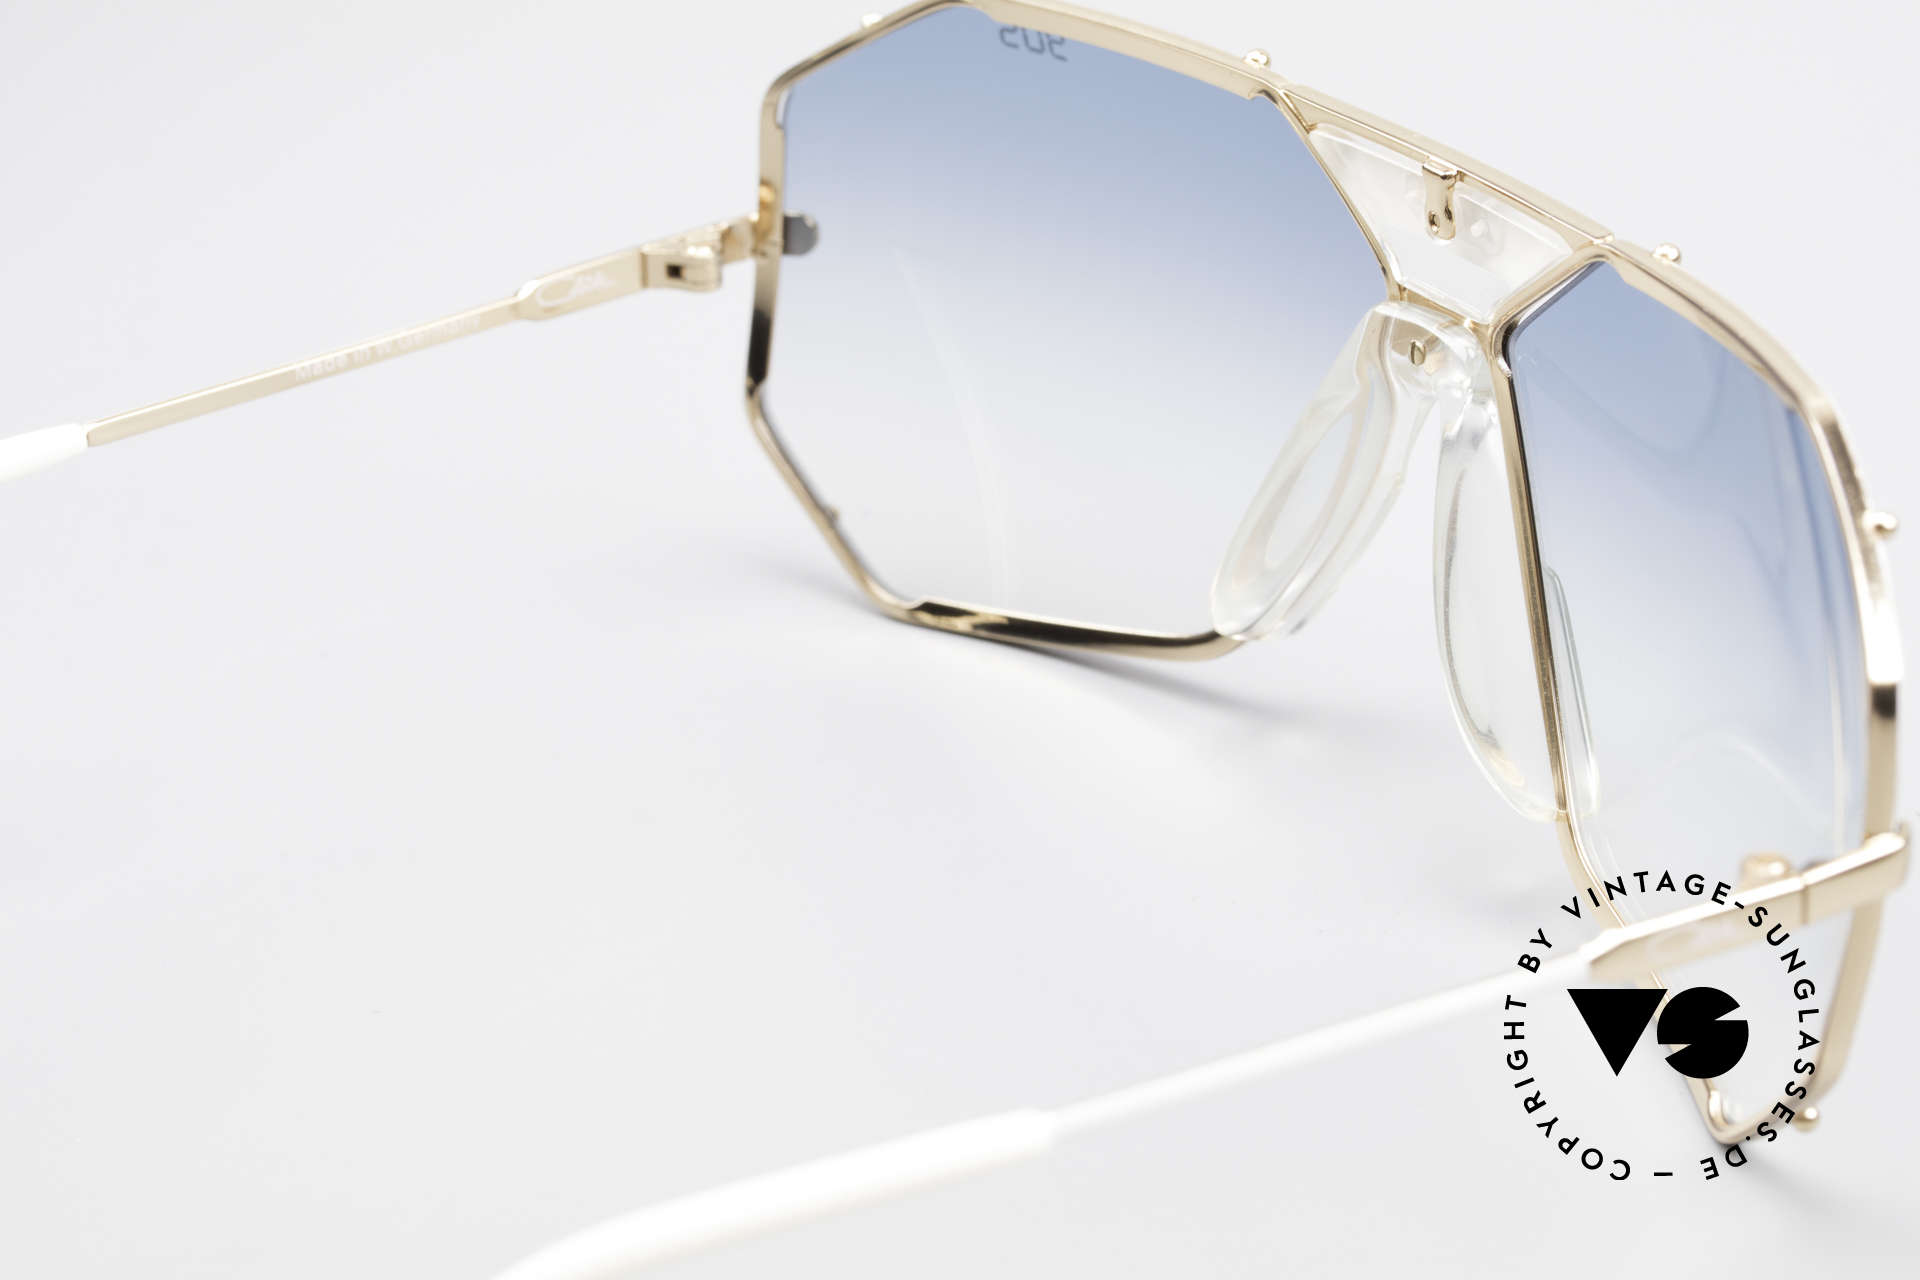 """Cazal 905 Gwen Stefani Vintage Shades, worn by Gwen Stefani (cover """"The Sweet Escape""""), Made for Men and Women"""